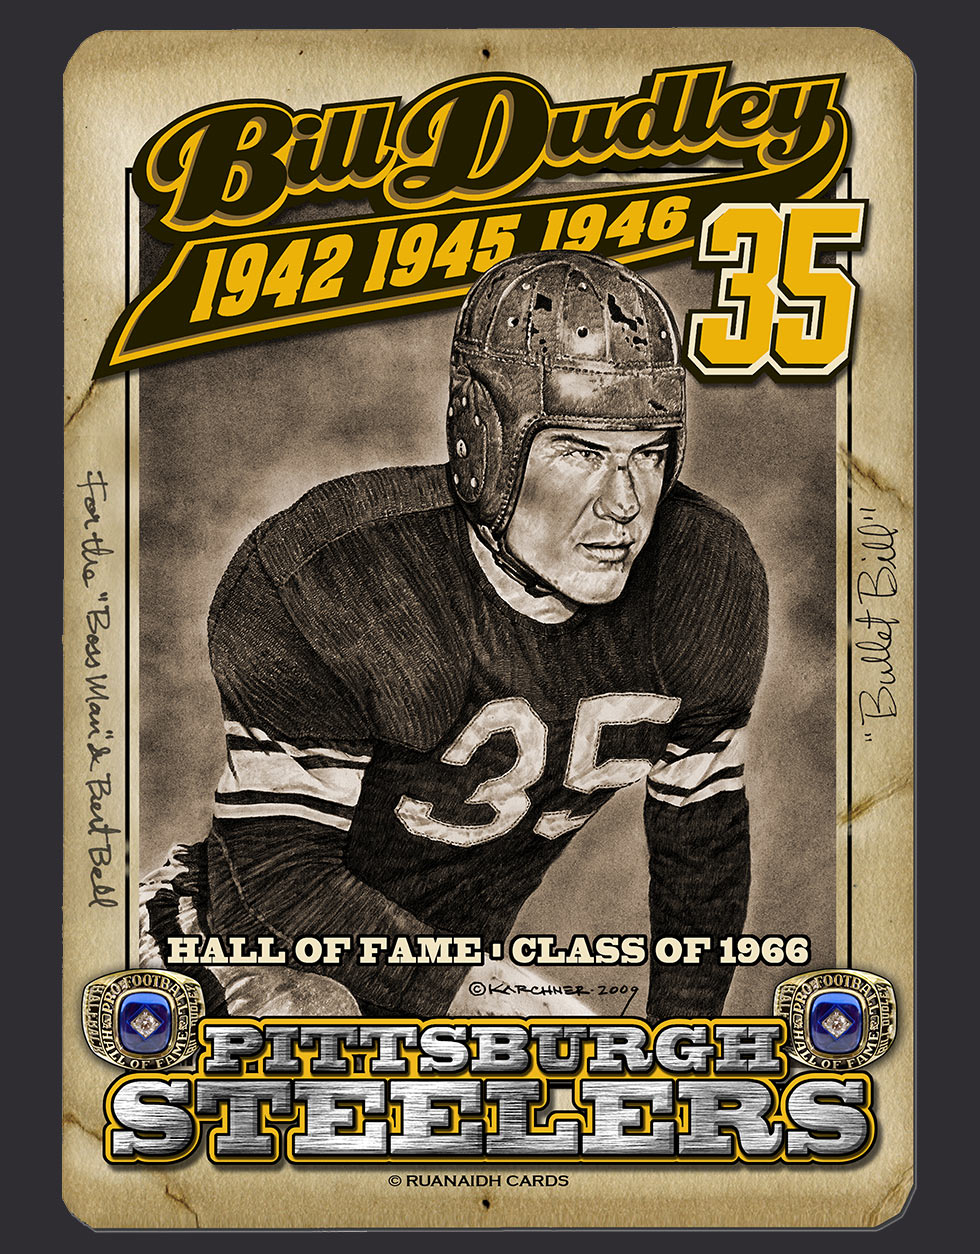 NFL Hall of Famer, Bill Dudley Card